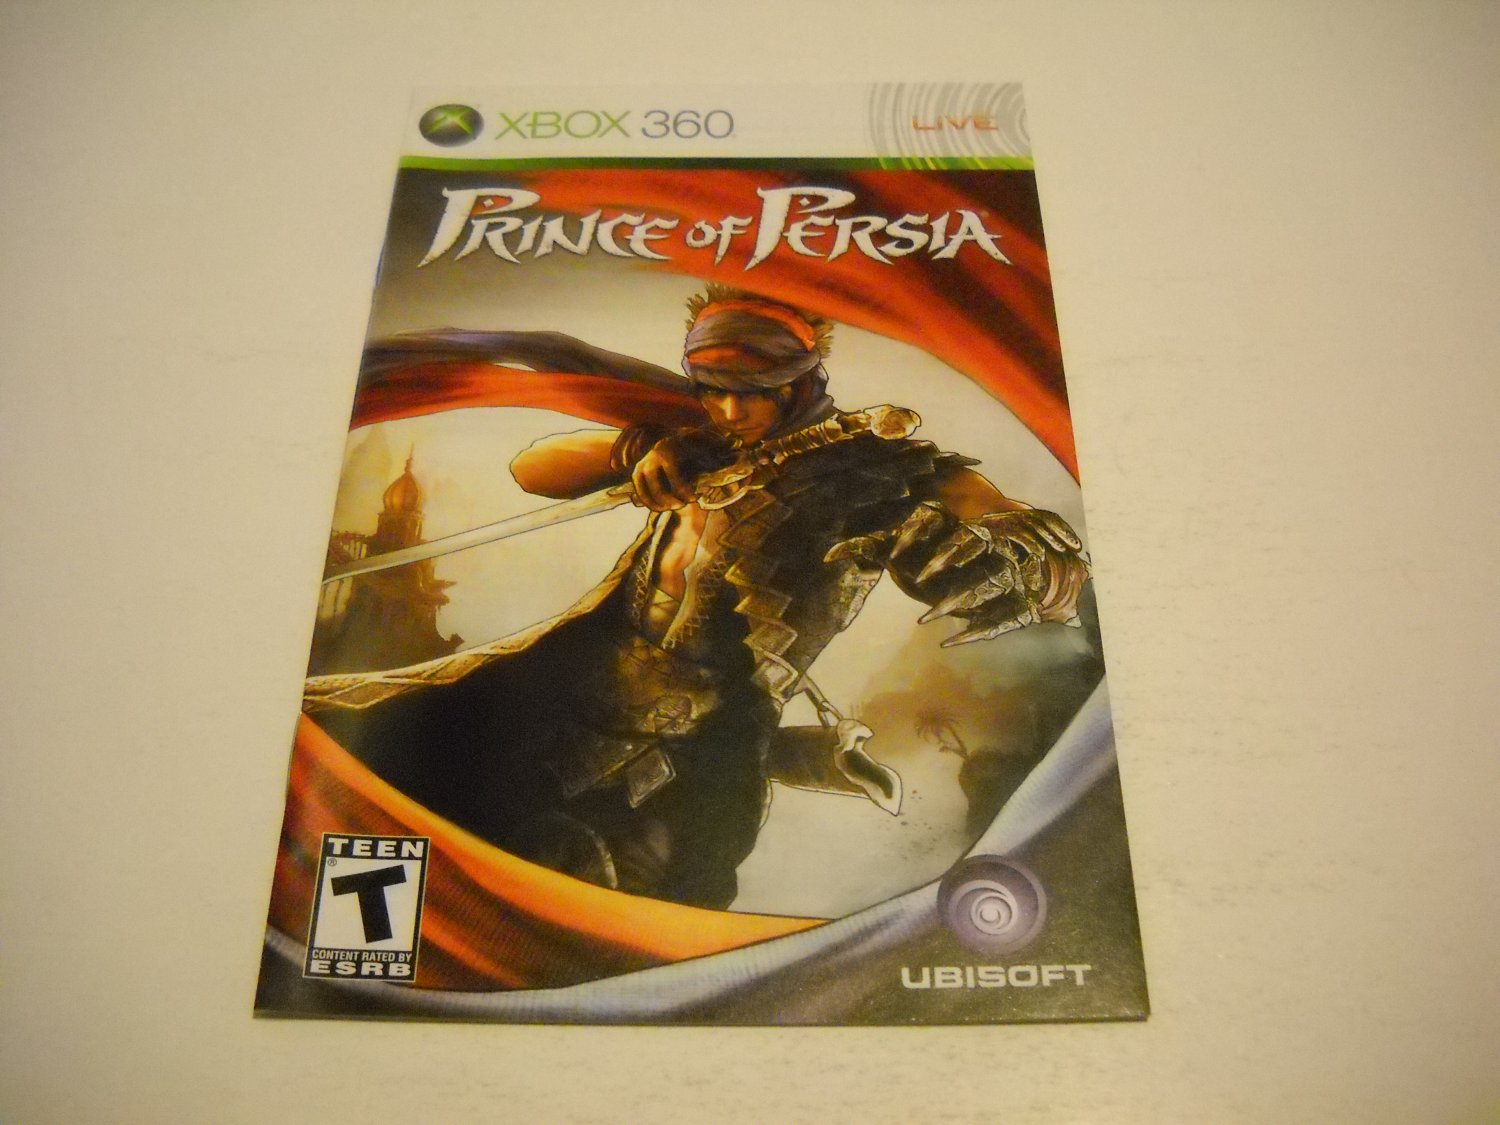 Manual ONLY ~  for Prince of Persia   - Xbox 360 Instruction Booklet